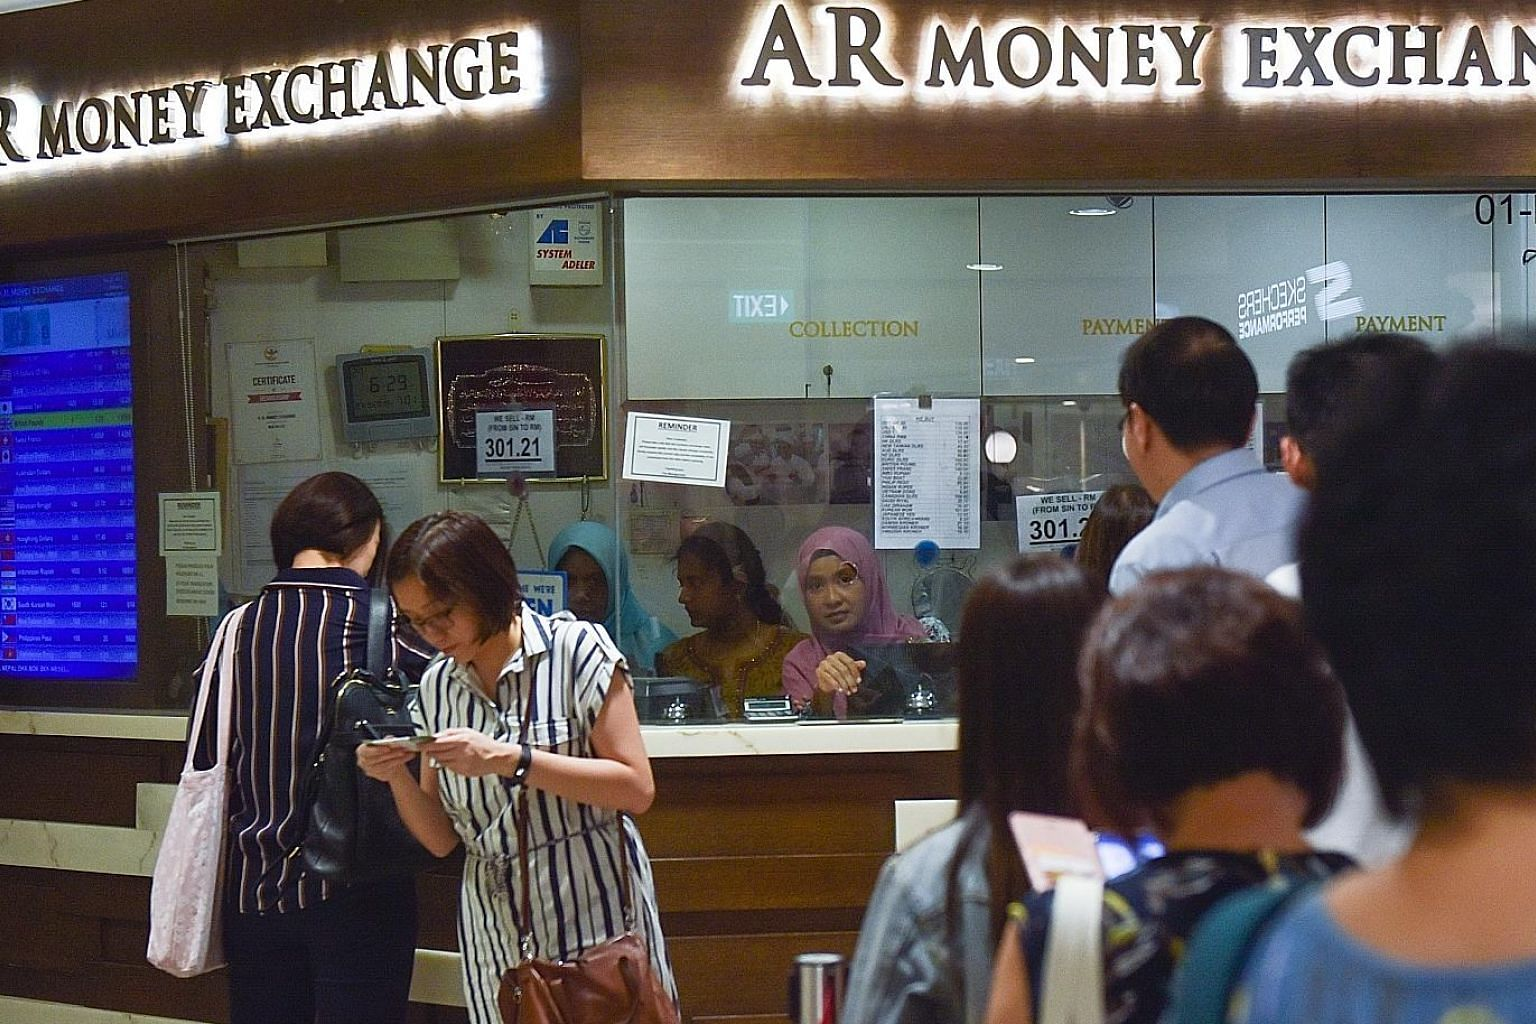 The Singdollar held steady against the greenback and Australian dollar, but was down against the Thai baht and Japanese yen. It also fared slightly higher against the Chinese yuan, Korean won, Malaysian ringgit and Taiwanese dollar.